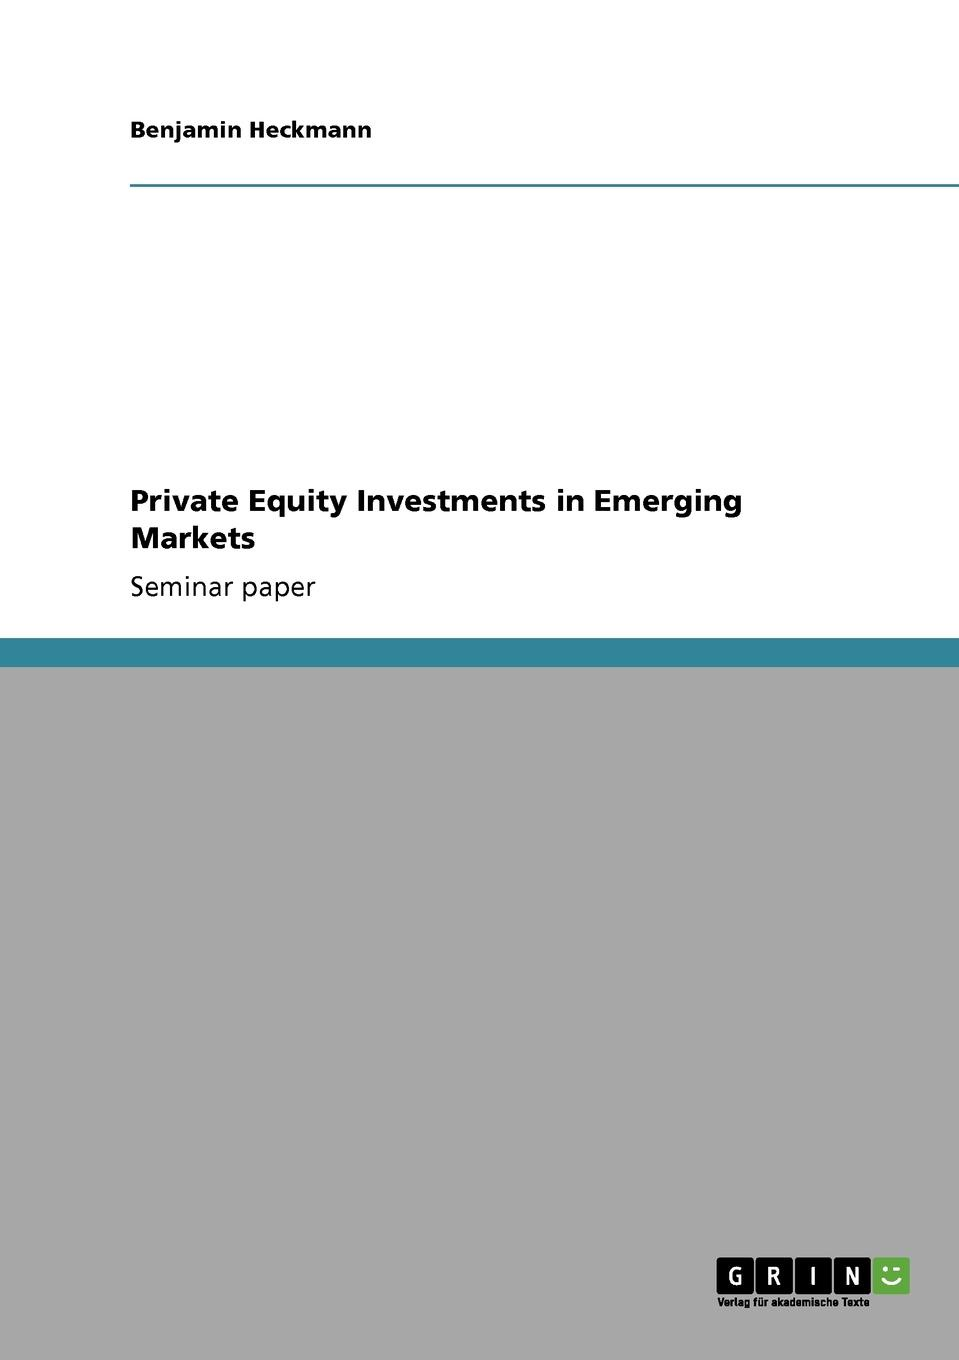 Benjamin Heckmann Private Equity Investments in Emerging Markets fisher investments fisher investments on emerging markets